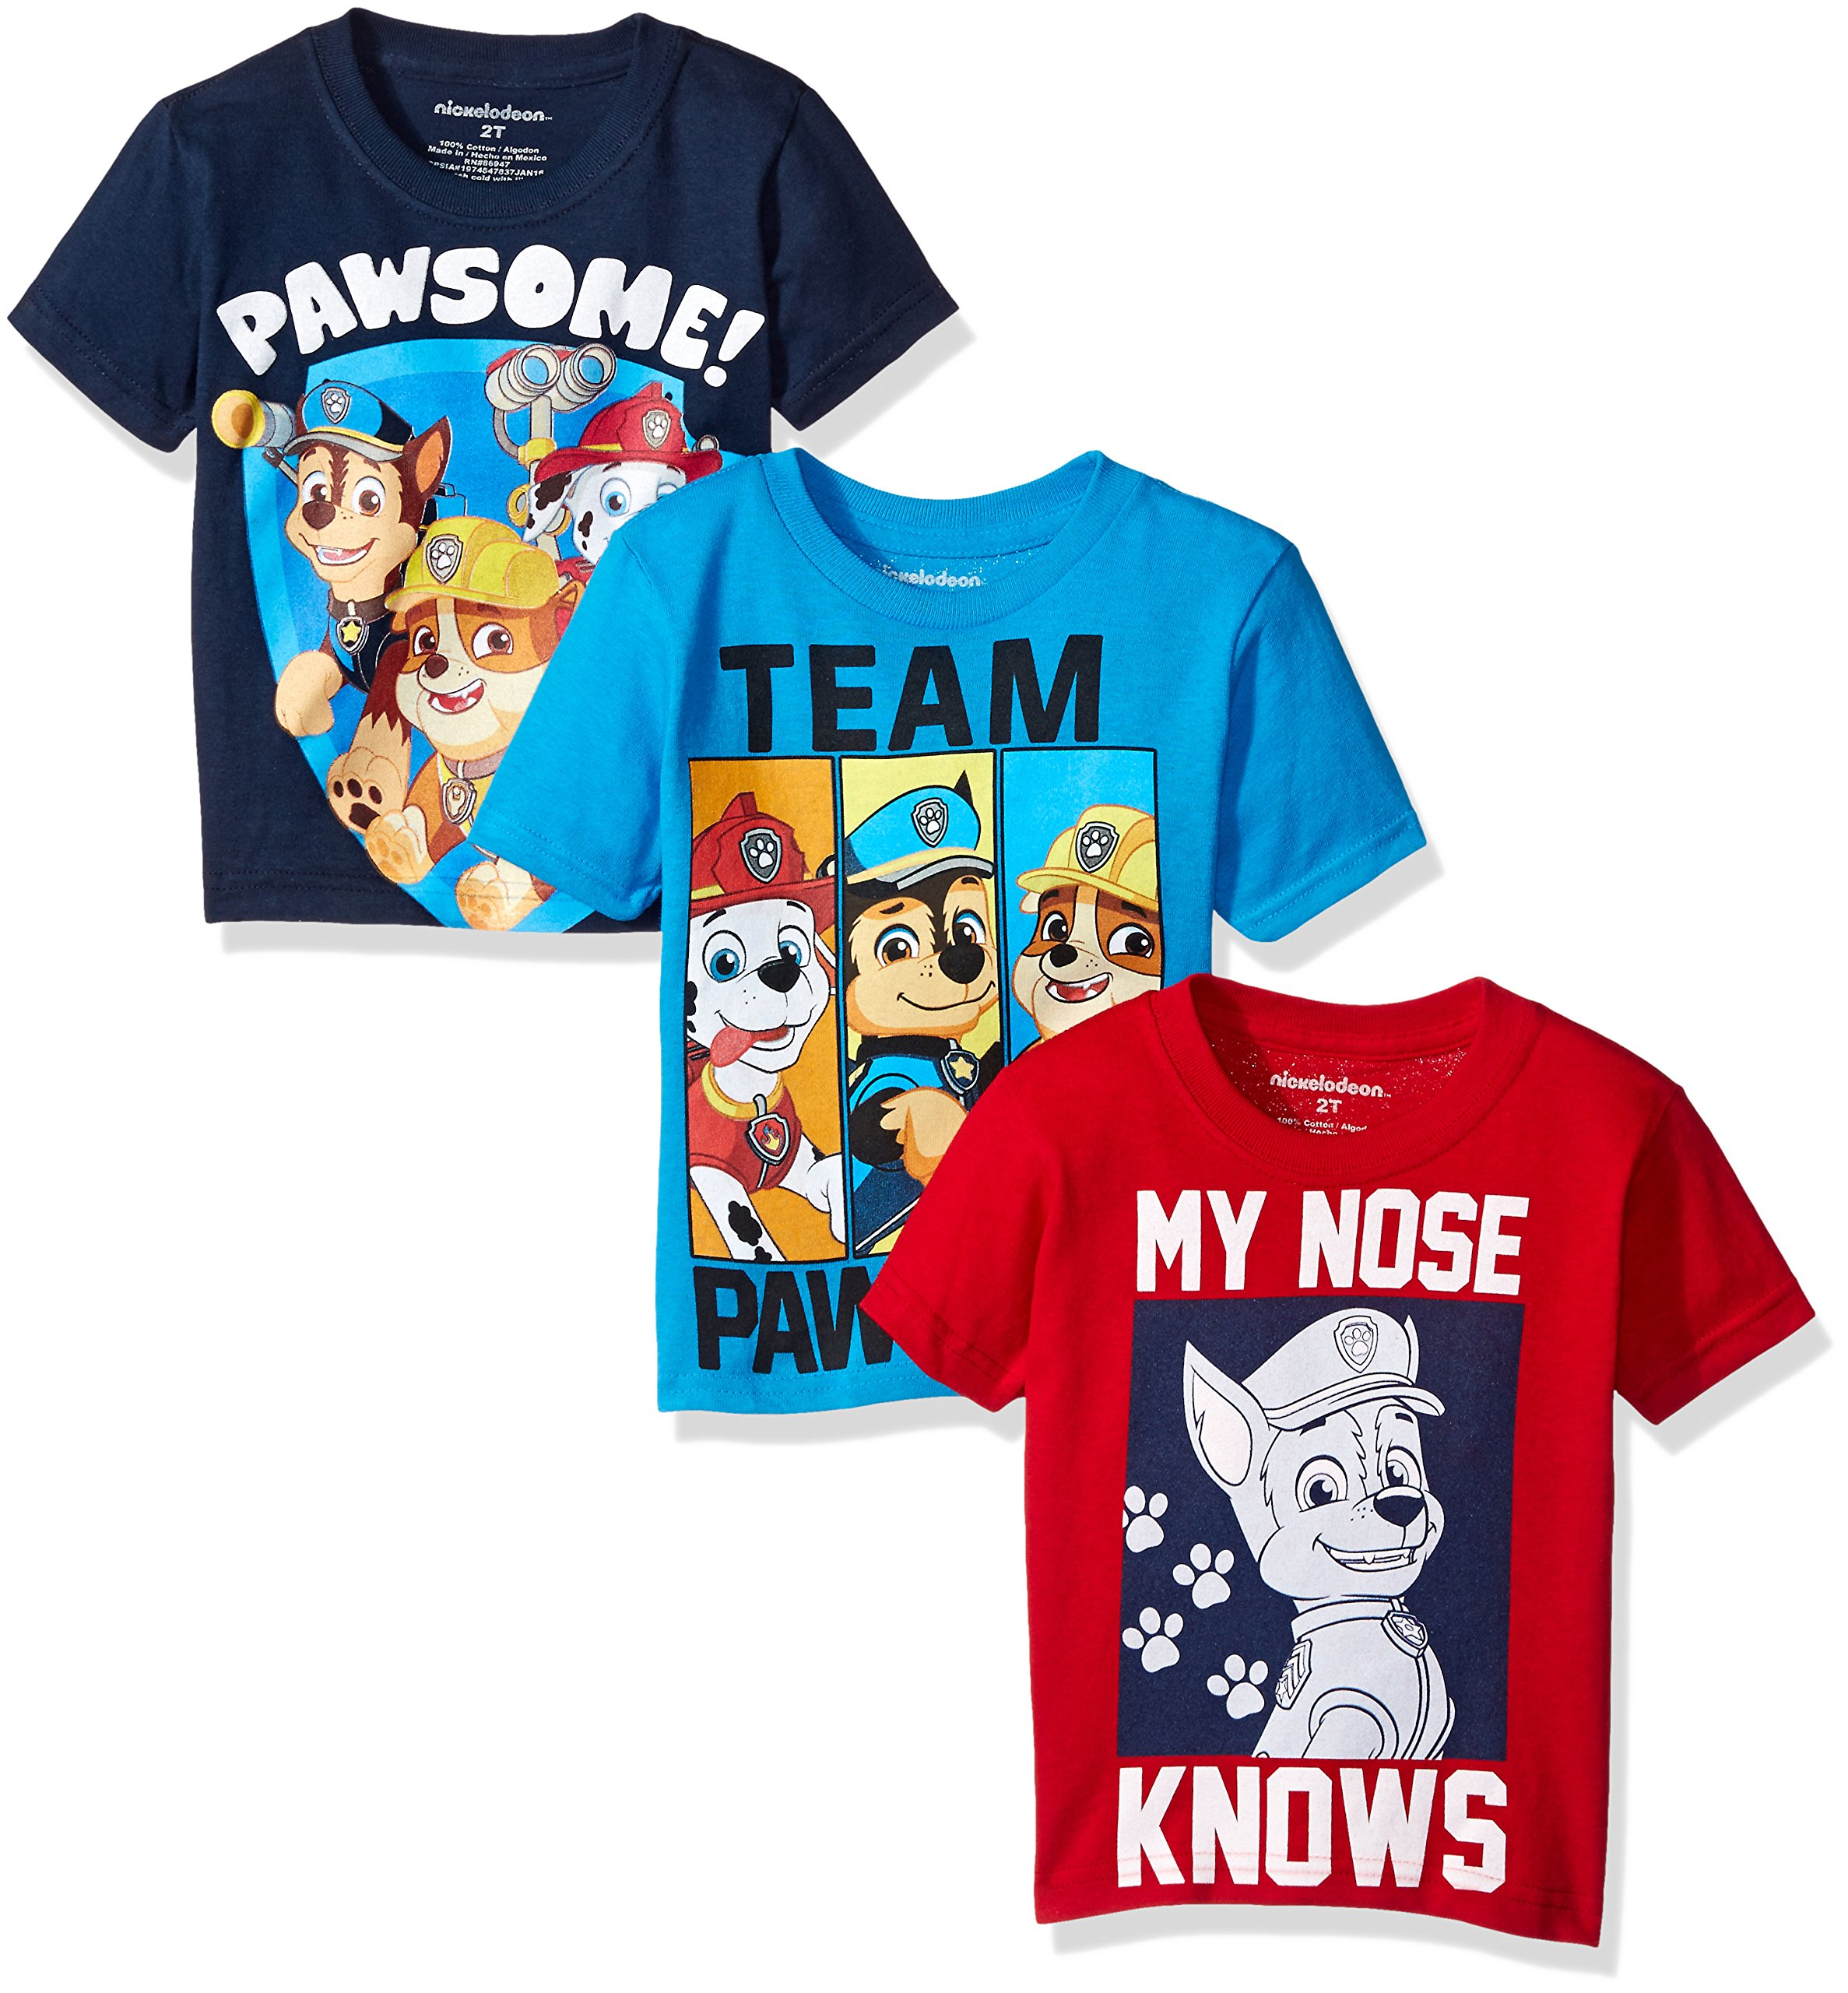 Paw Patrol Toddler Boys' 3-Pack T-Shirt Shirts, Assorted Colors, 4T